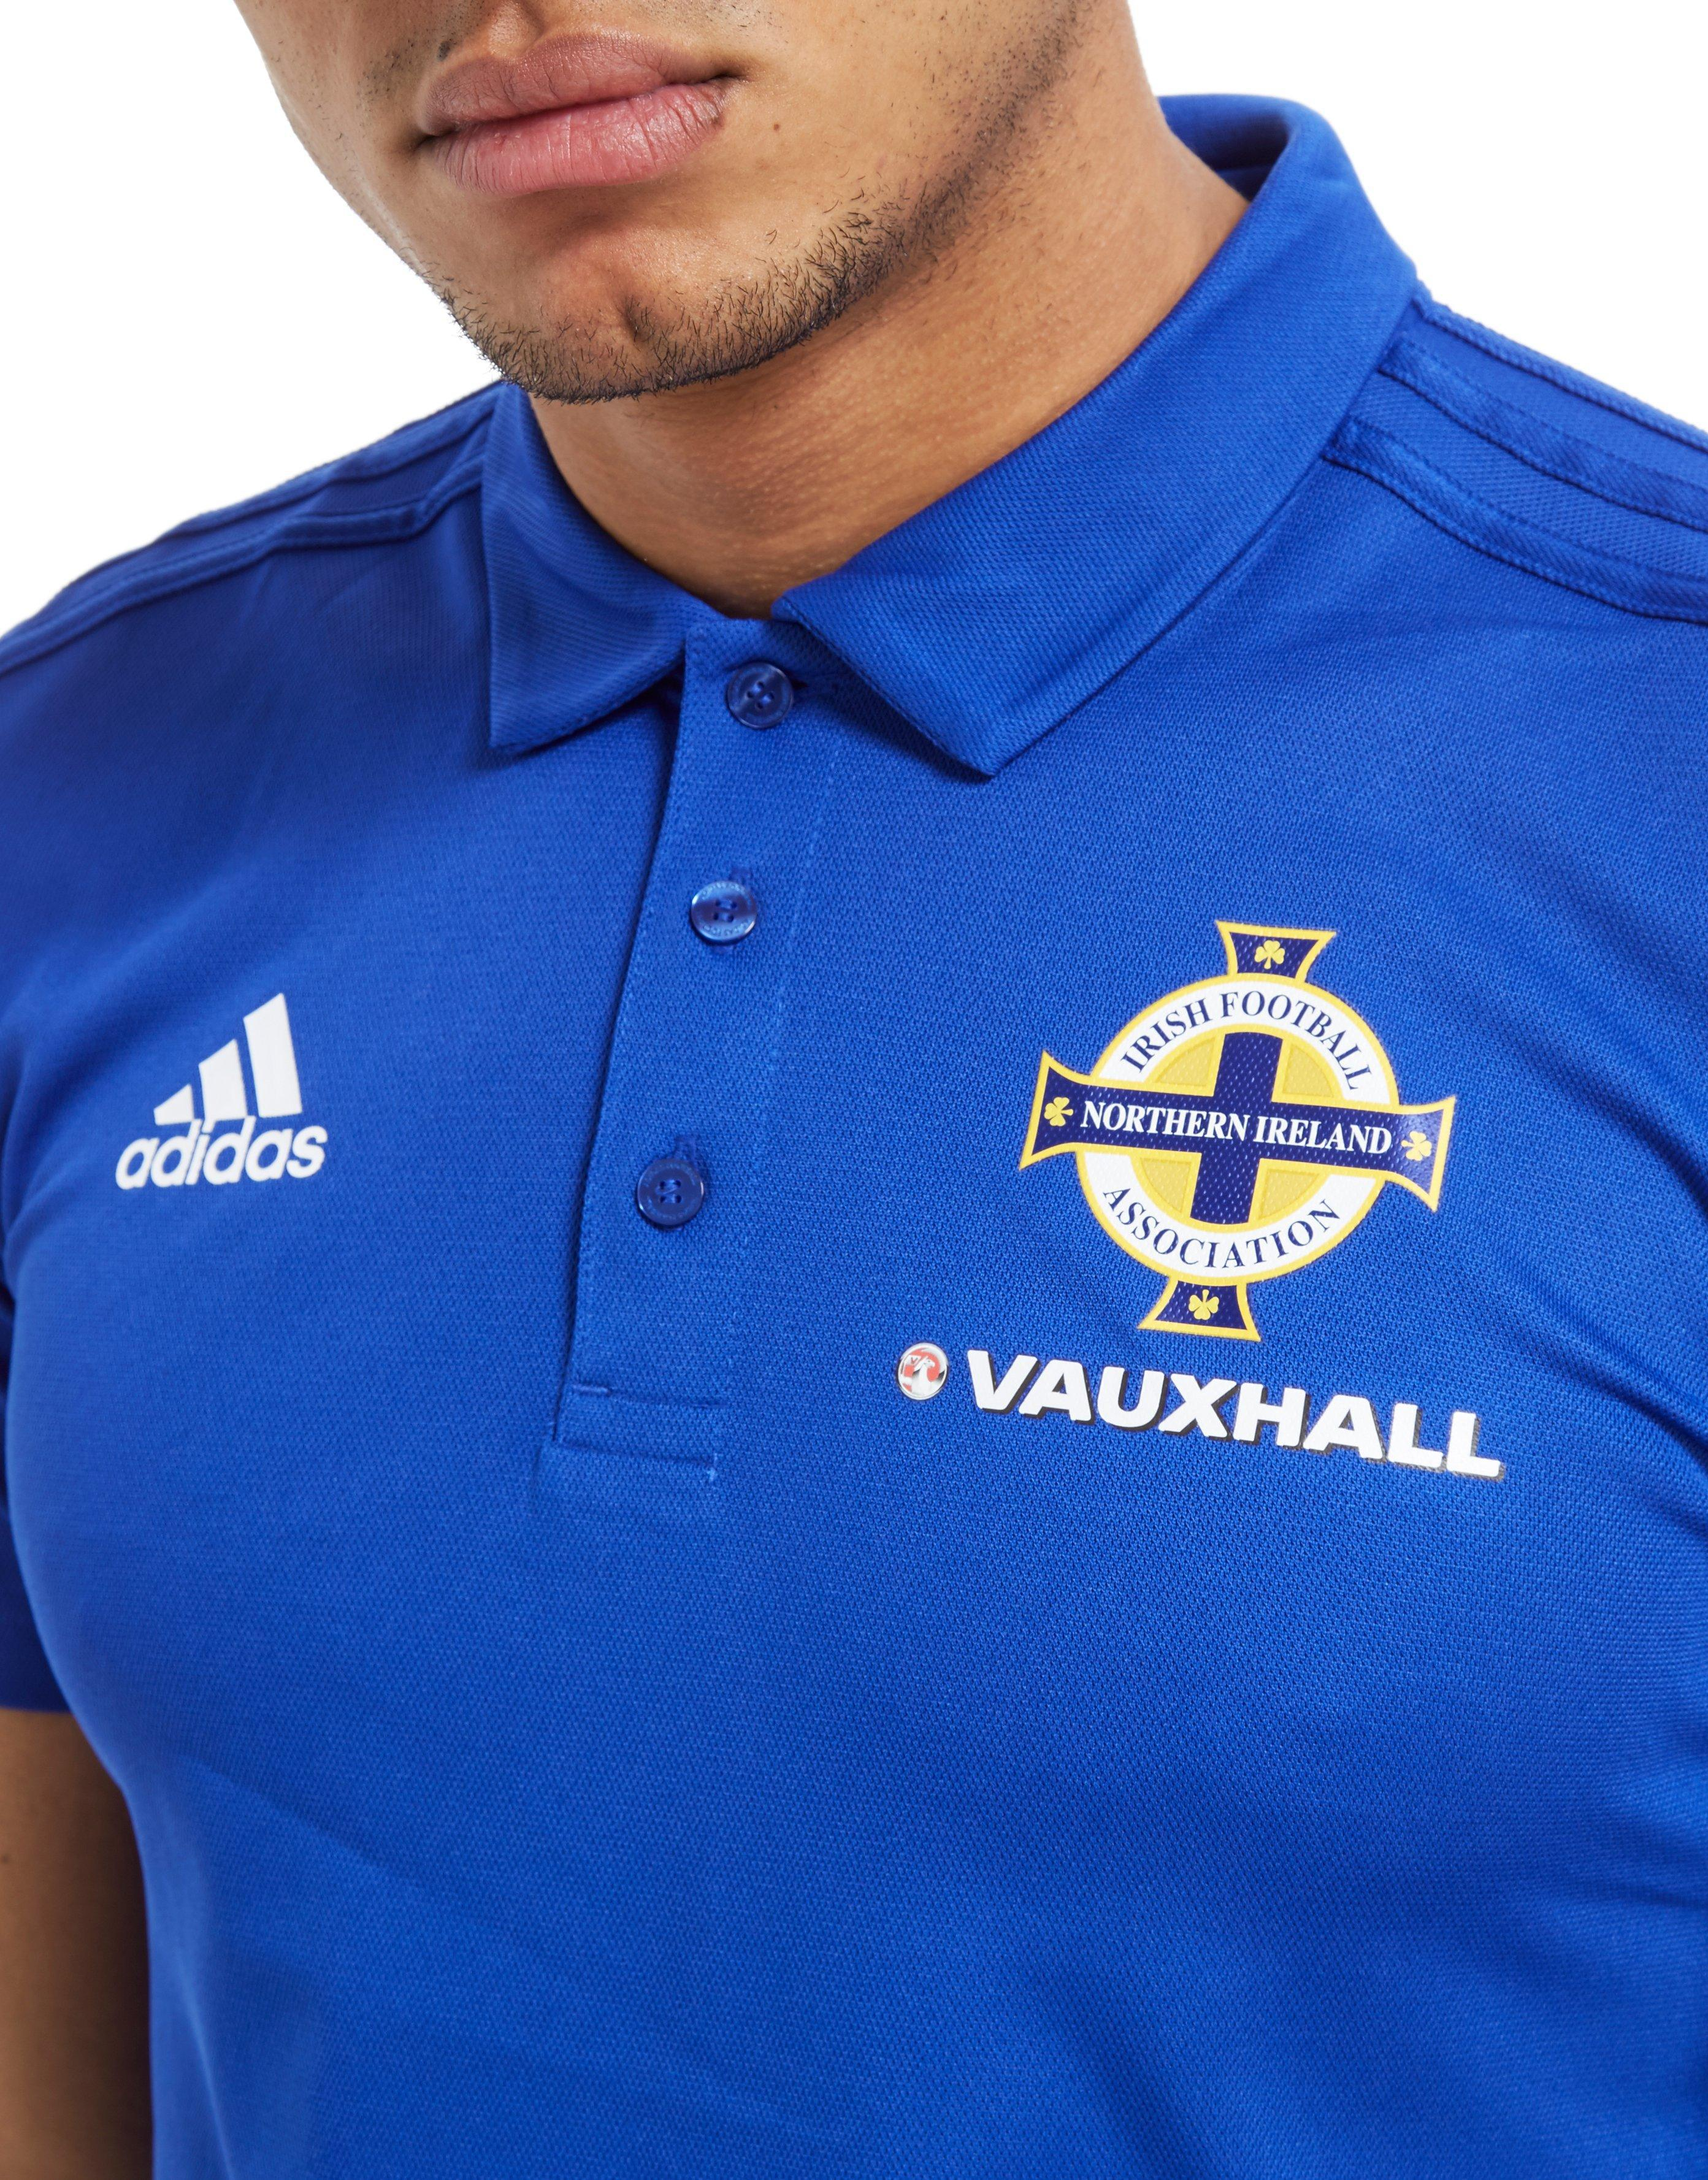 983862d46dd adidas Northern Ireland 2018/19 Polo Shirt in Blue for Men - Lyst